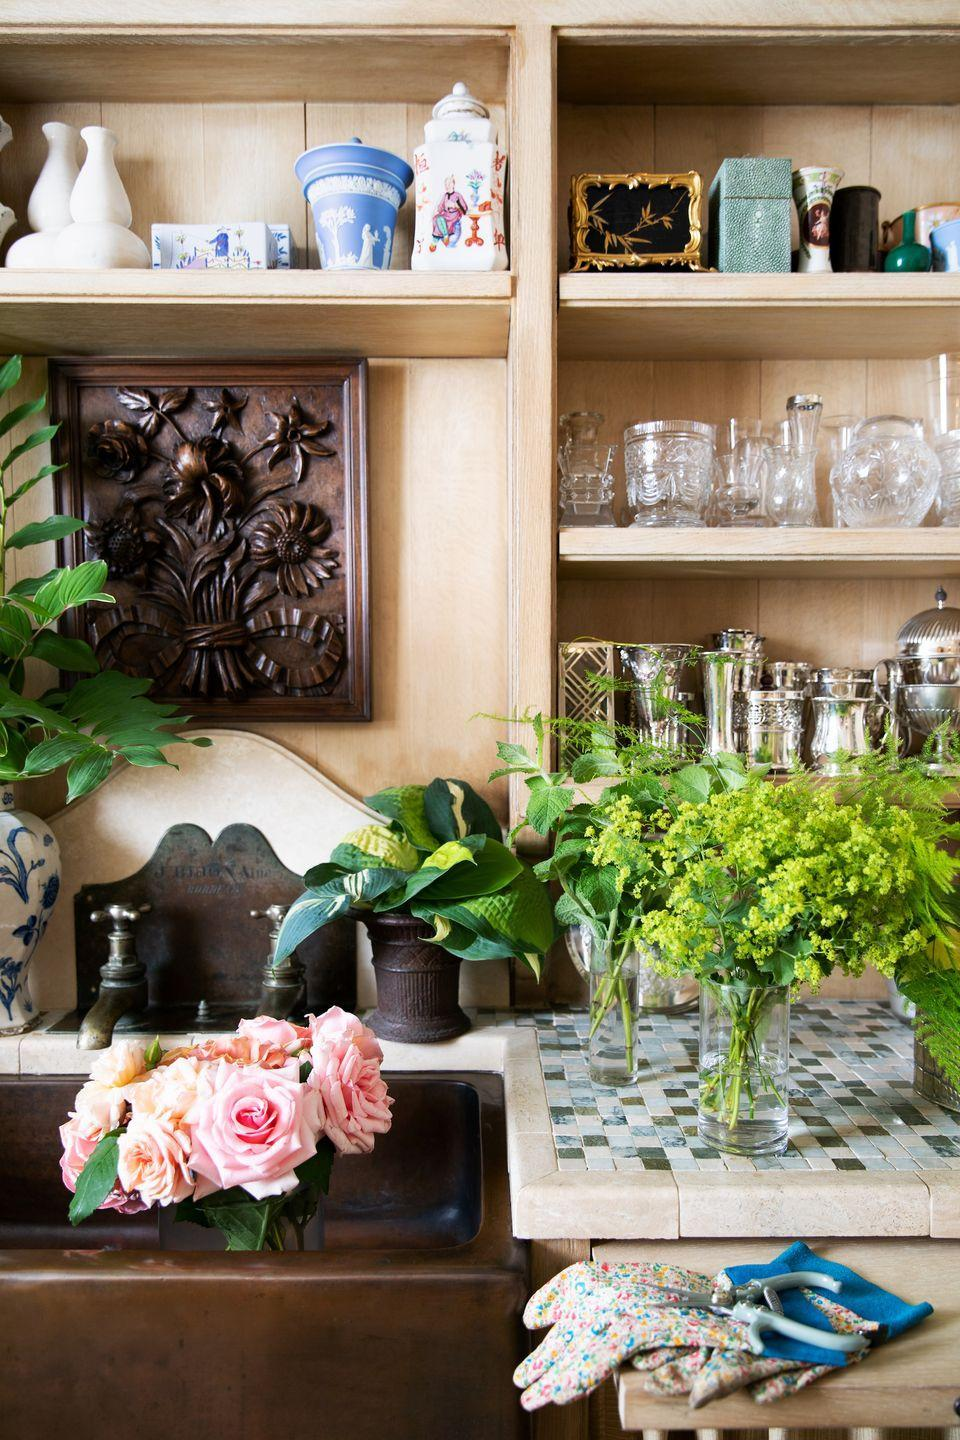 """<p>While Moss is fortunate enough to have a dreamy flower room, you can achieve a makeshift version by curating a """"floral toolbox"""" to bring into any space when crafting an arrangement. Her necessities include: florist tape (especially if you use glass vases often where a flower frog would be visible), flower shears and secateurs that fit your hands comfortably, chicken wire for positioning flowers, and twine or raffia to keep flowers in place. She also likes stem strippers to remove unwanted leaves and thorns, as well as bottle brushes to clean the nooks and crannies of your various containers.</p><p>Moss also suggests keeping two types of gloves around for arranging. She loves Foxgloves gardening gloves for working with non-thorny blooms and thicker Pine Tree gioves for favorites like roses, that have pesky thorns. </p>"""